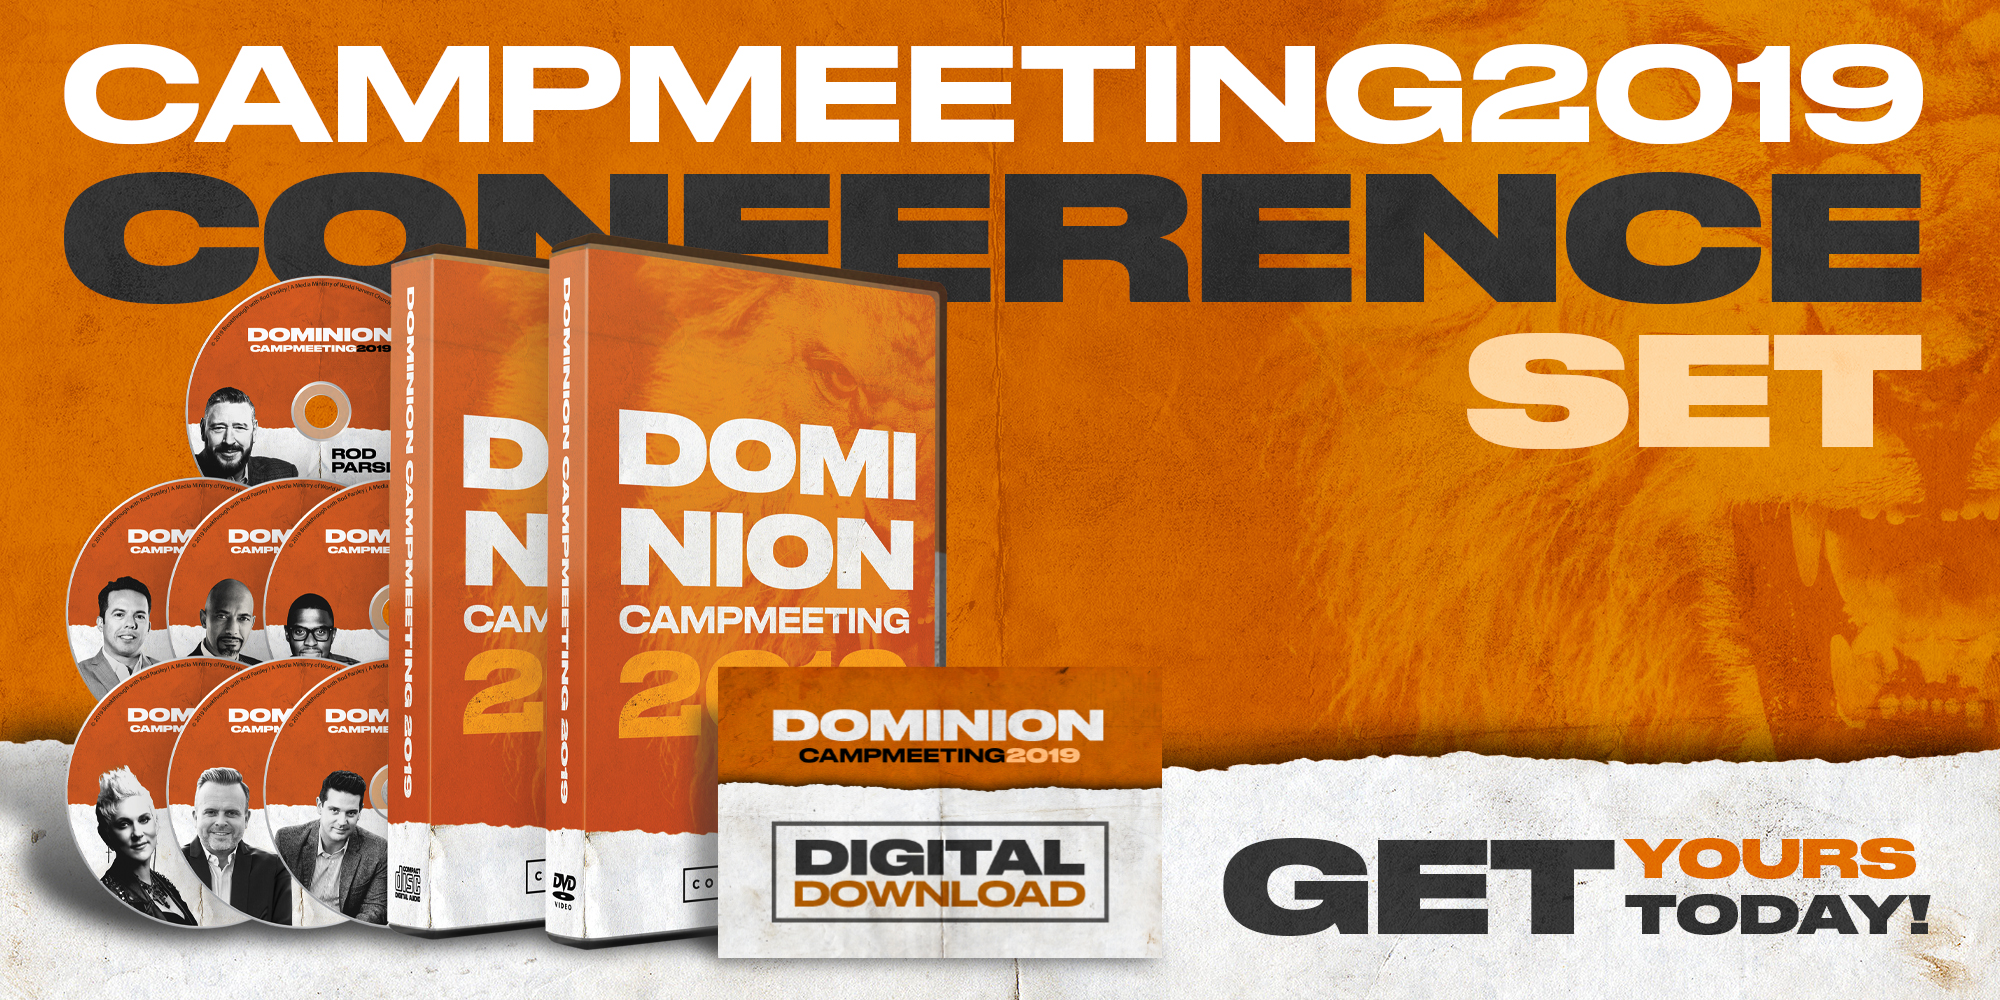 Dominion Camp Meeting 2019 - ConferenceSets | Get Yours Today